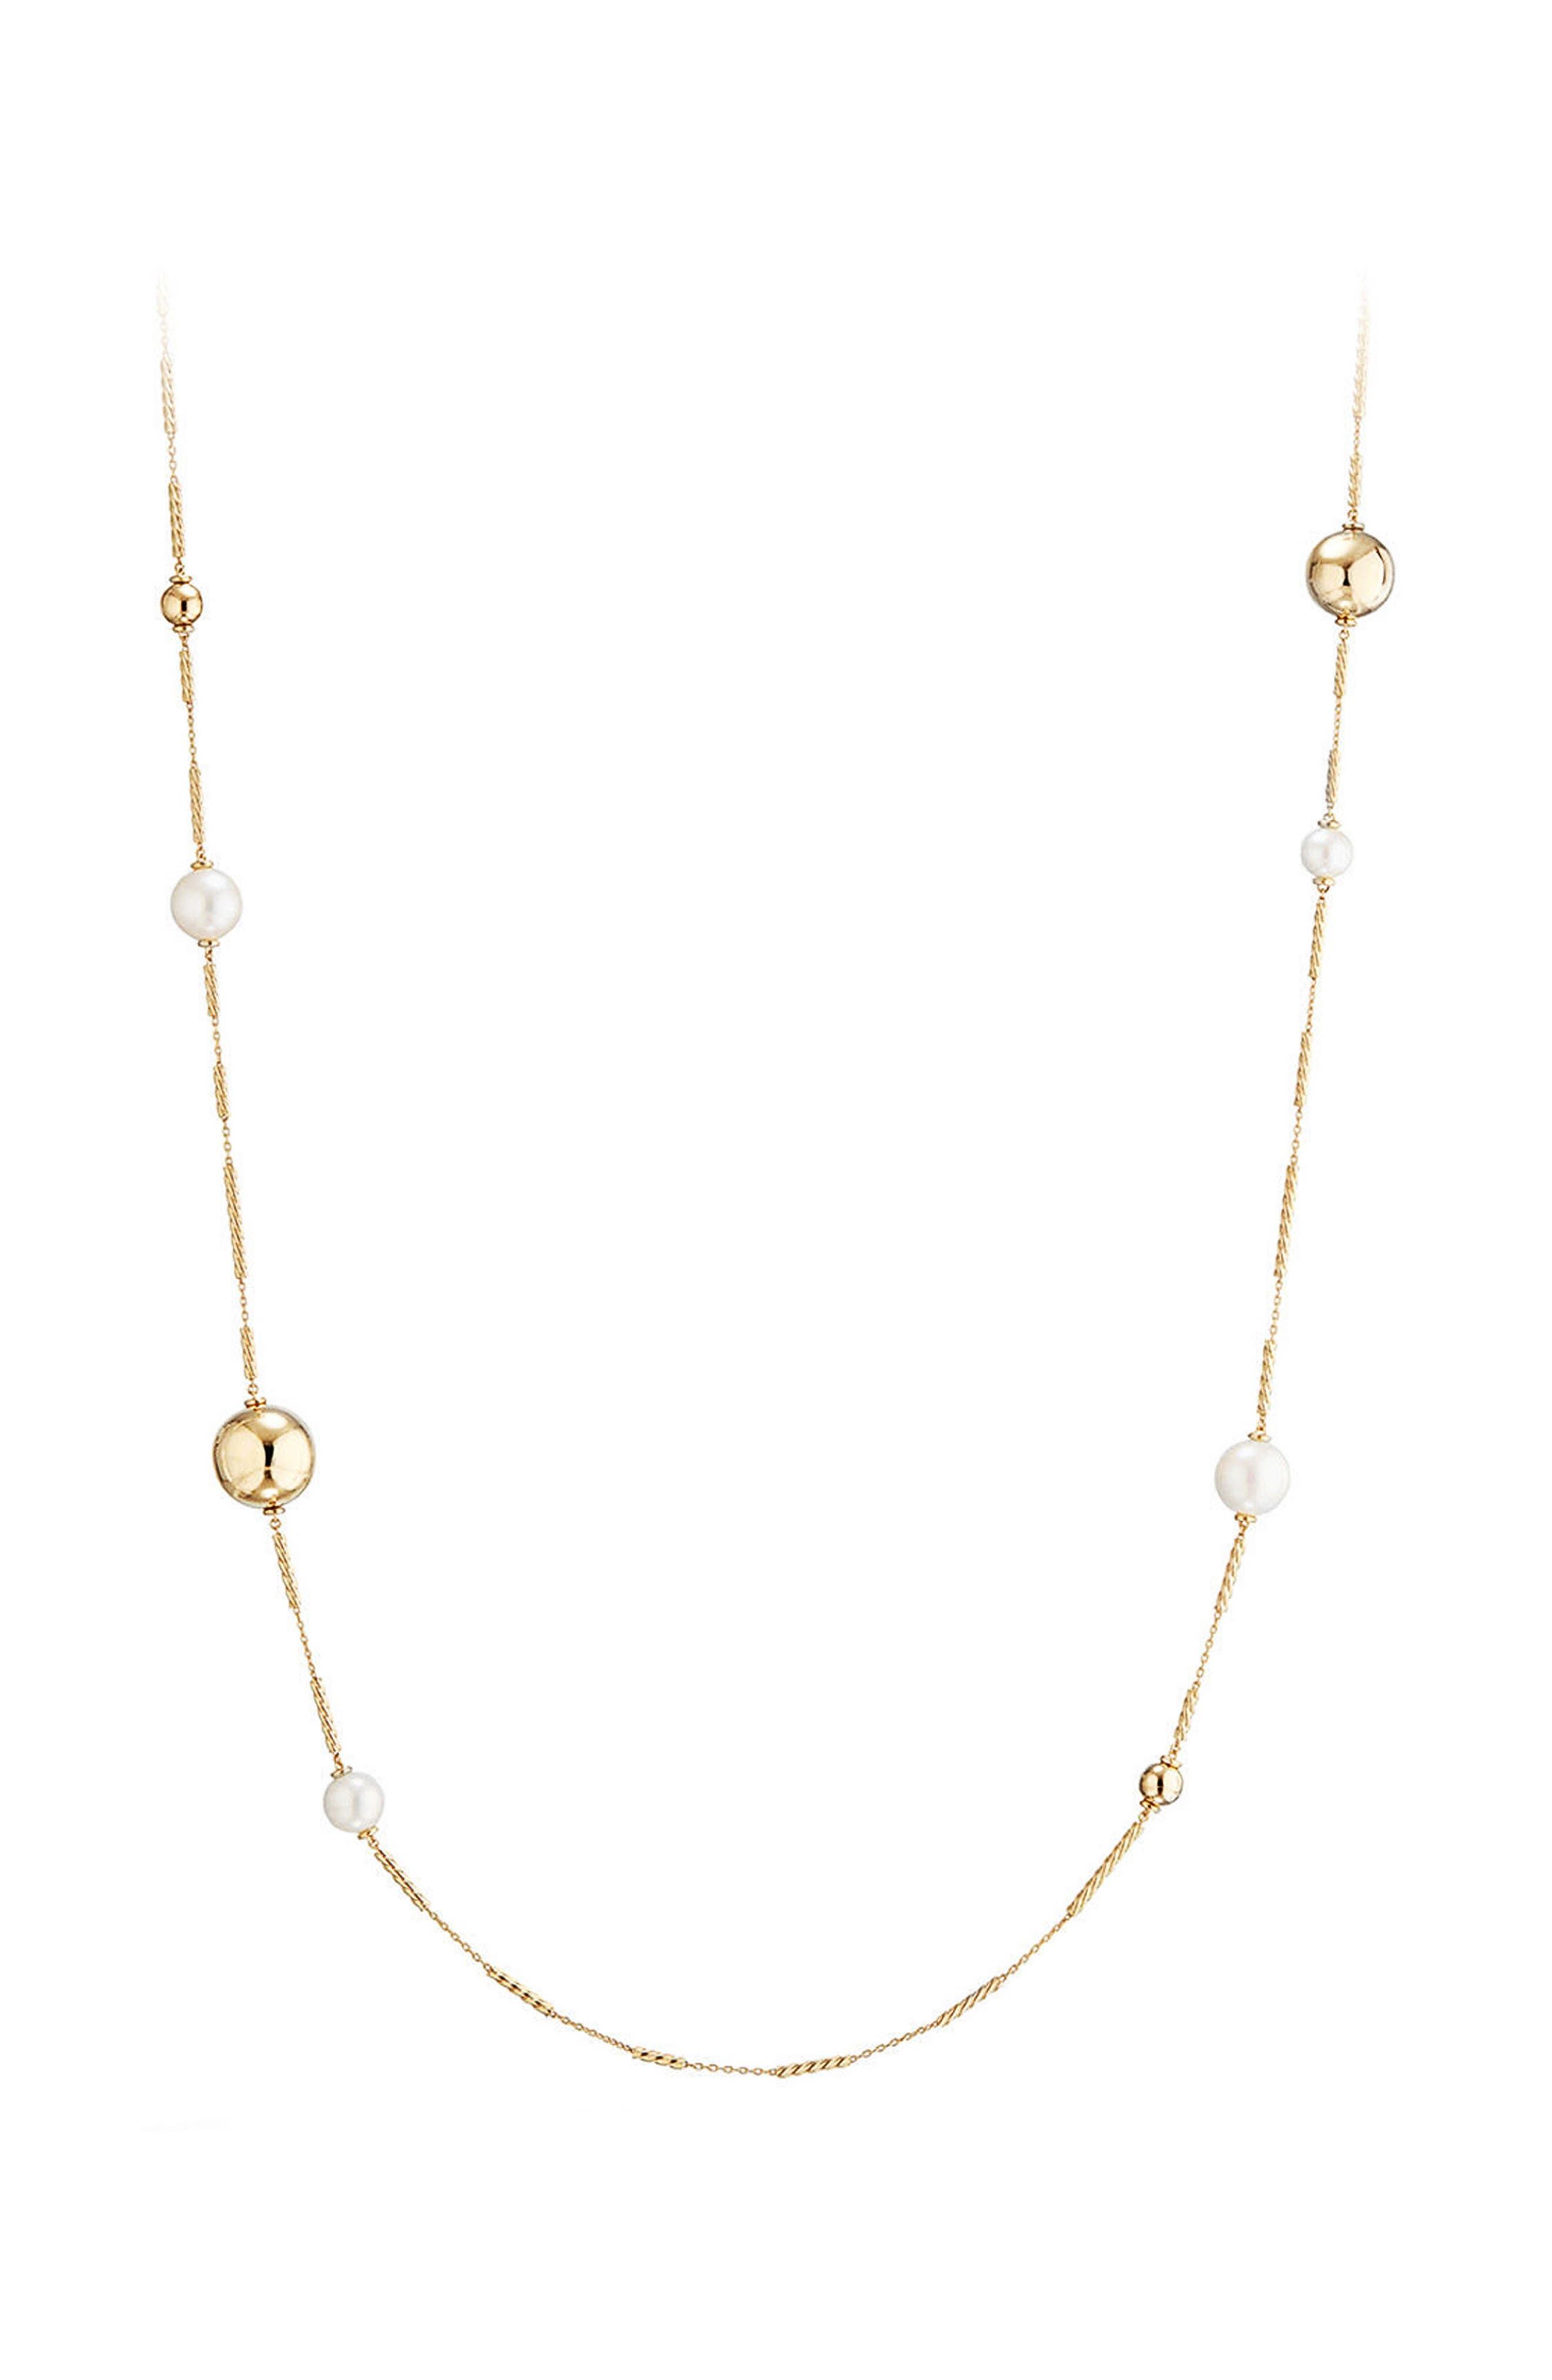 Solari Long Station Necklace with Pearls in 18K Gold,                             Main thumbnail 1, color,                             PEARL